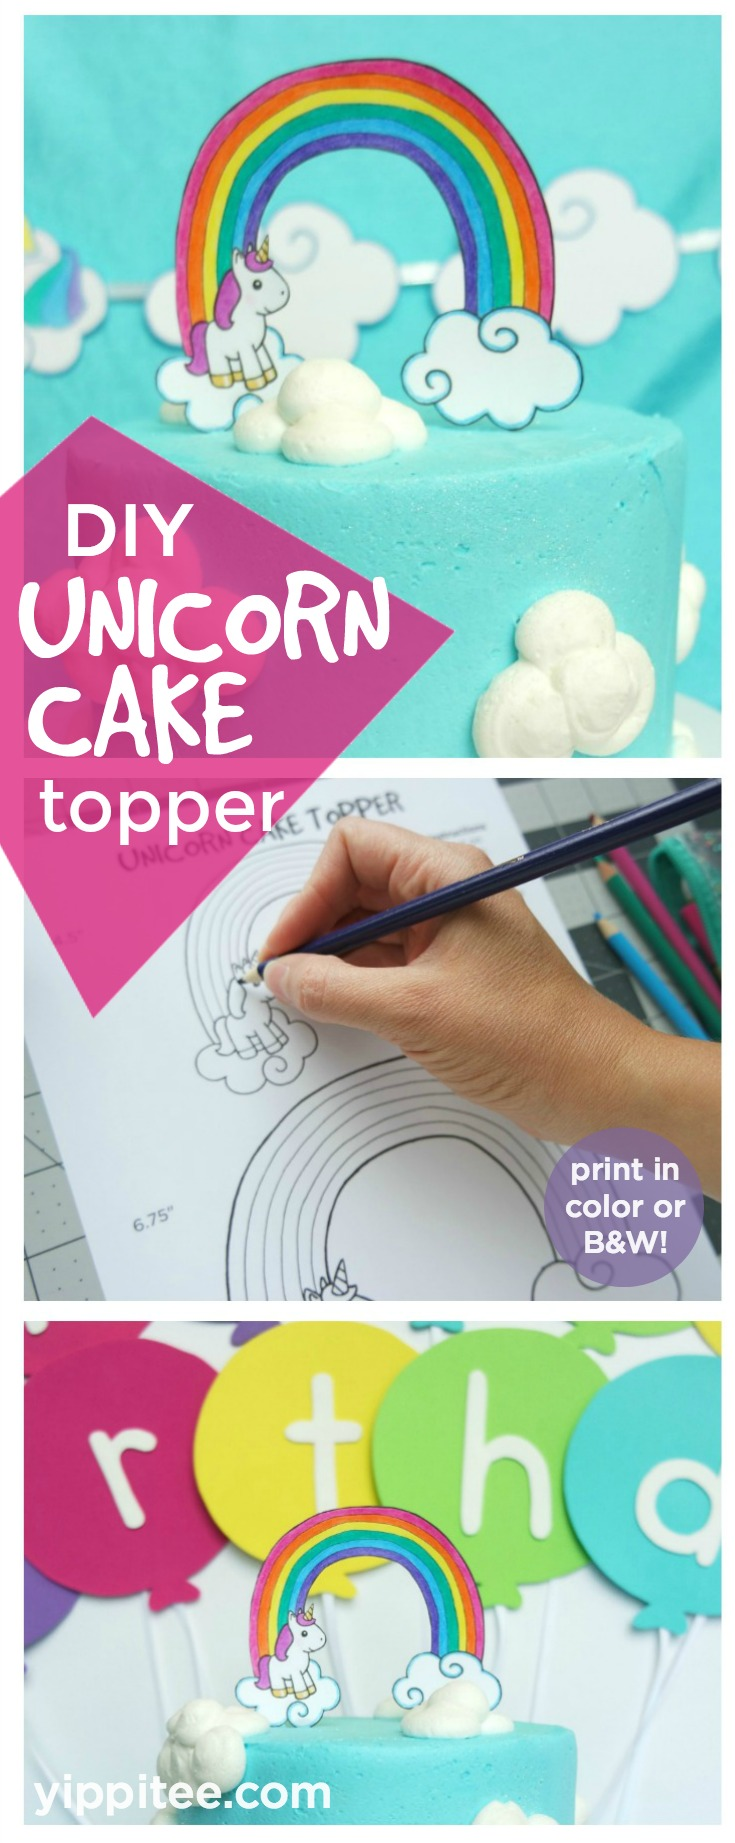 DIY Unicorn Cake Topper - Free printable unicorn cake topper that you can print in full color or as a black and white coloring page to customize to fit your party theme. Rainbow unicorn party decoration #unicornparty #unicorncake #unicornbirthday #rainbowcake